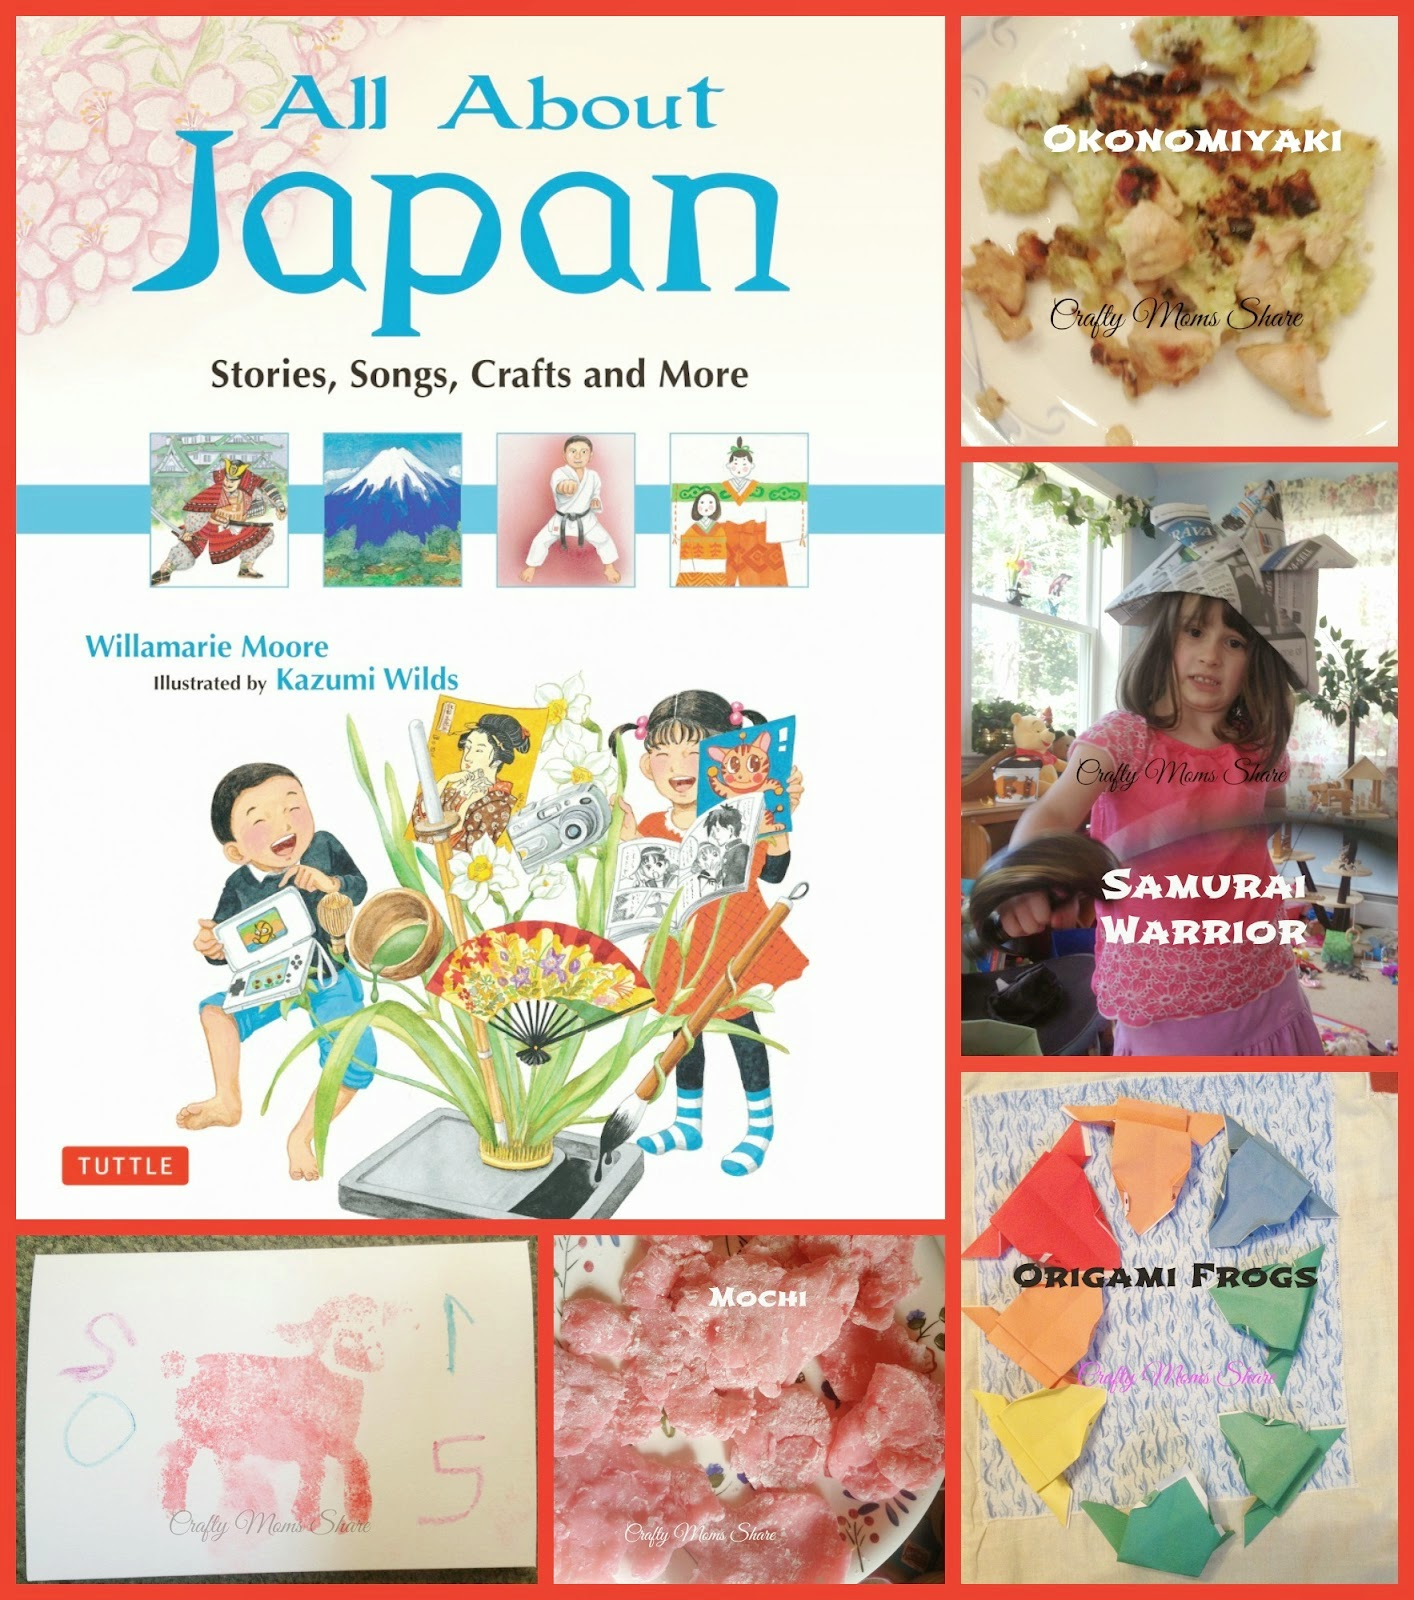 http://craftymomsshare.blogspot.com/2014/09/all-about-japan-by-willamarie-moore.html